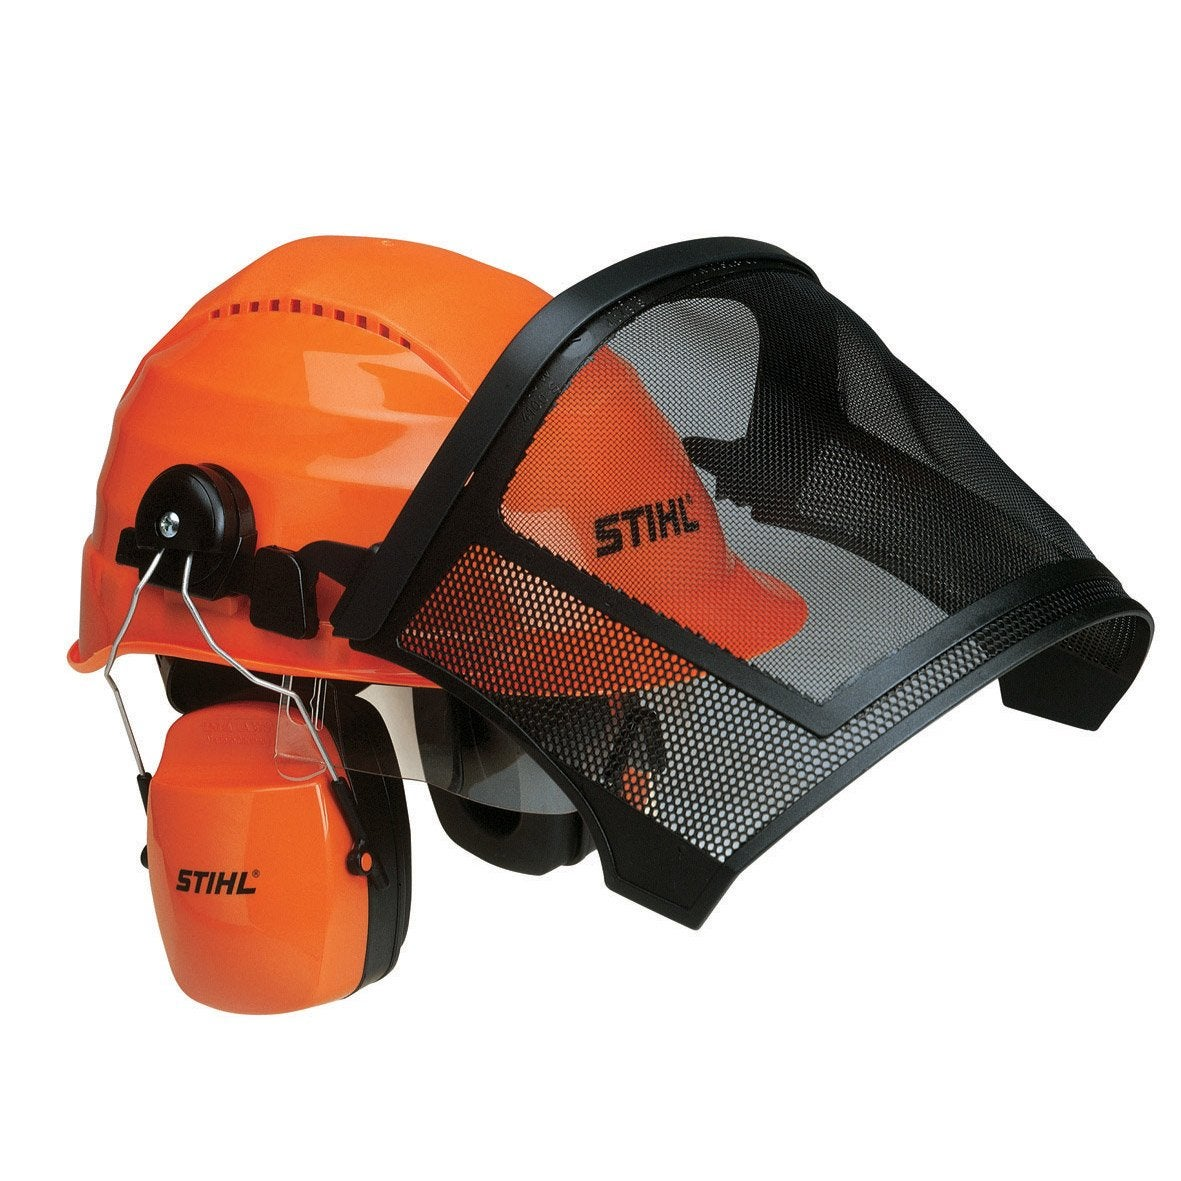 casque de protection int gral stihl leroy merlin. Black Bedroom Furniture Sets. Home Design Ideas